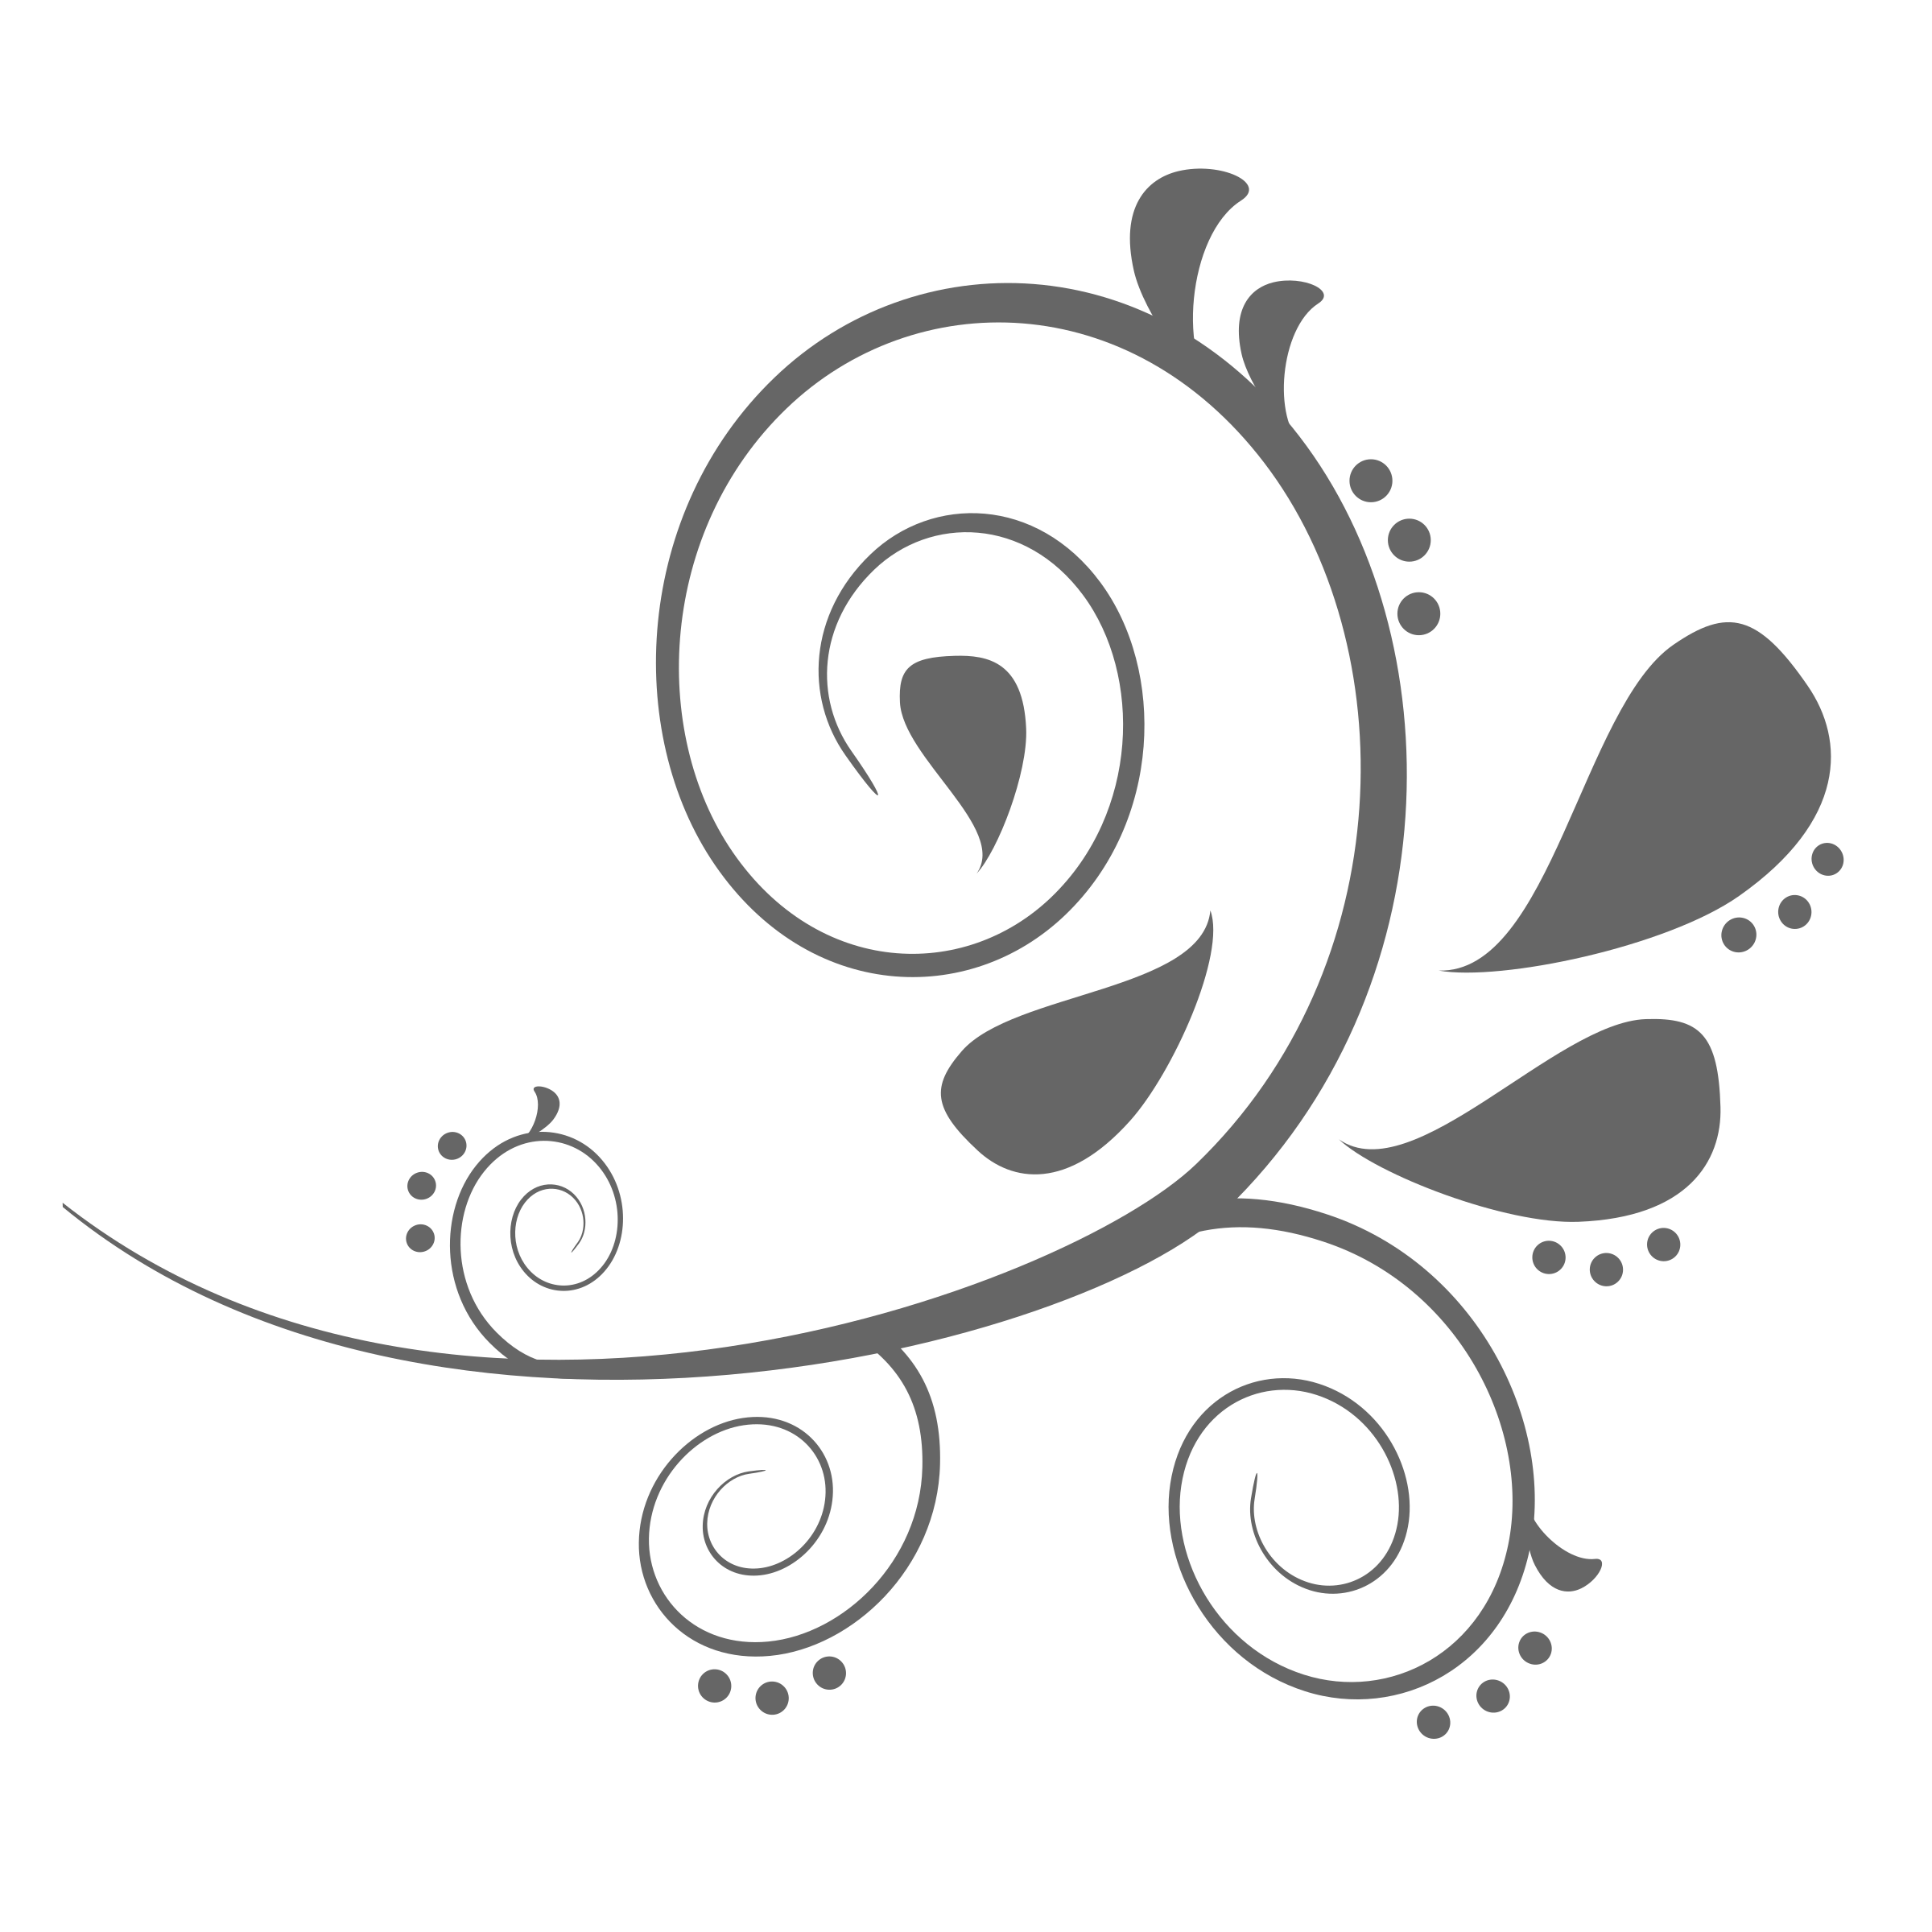 Flower vine clipart black and white clip art freeuse download Clipart - Paisley Curves clip art freeuse download